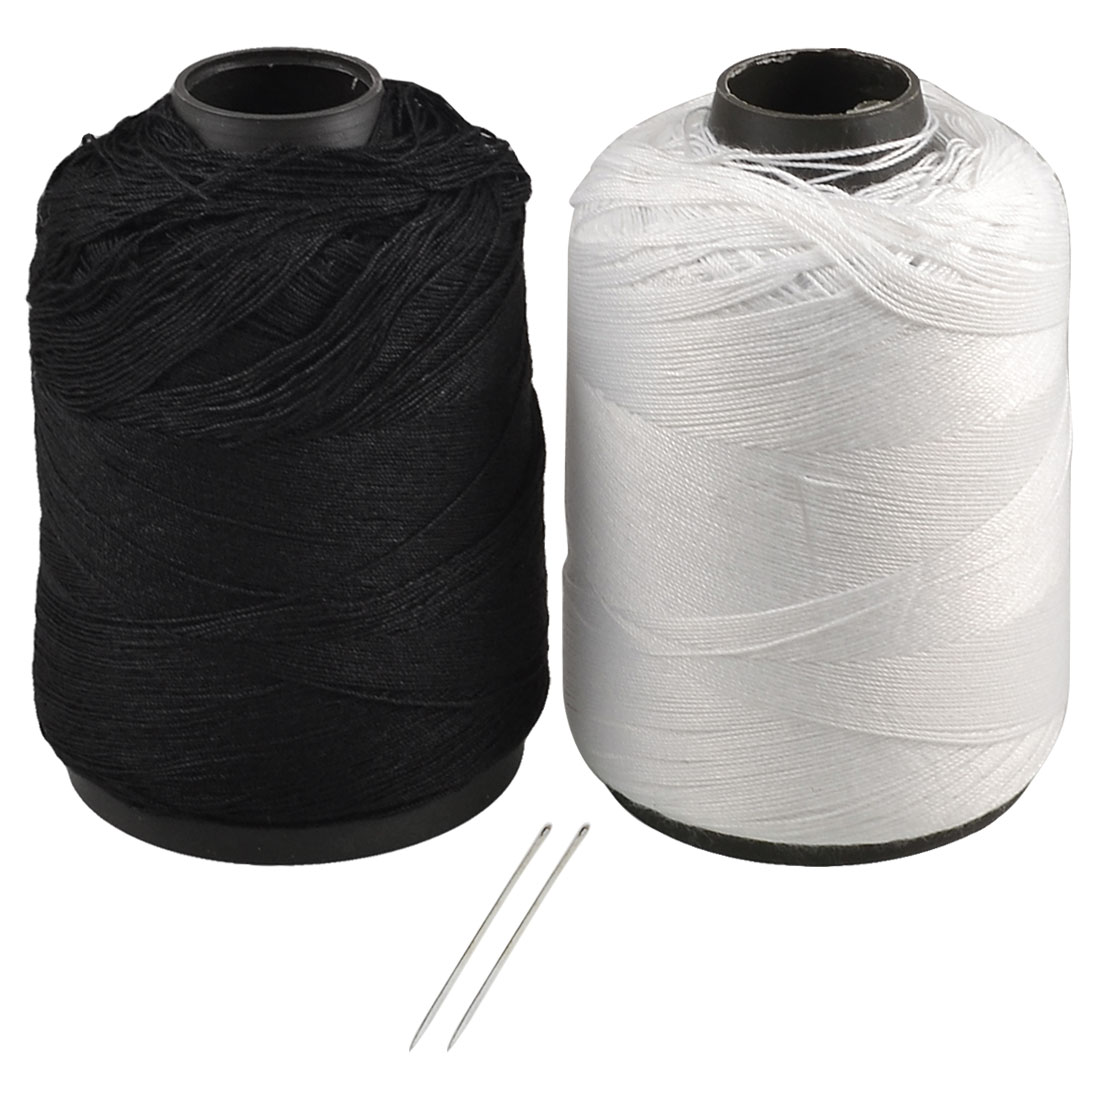 Home White Black Cotton Stitching Sewing Thread Reel Line String 2 Pcs